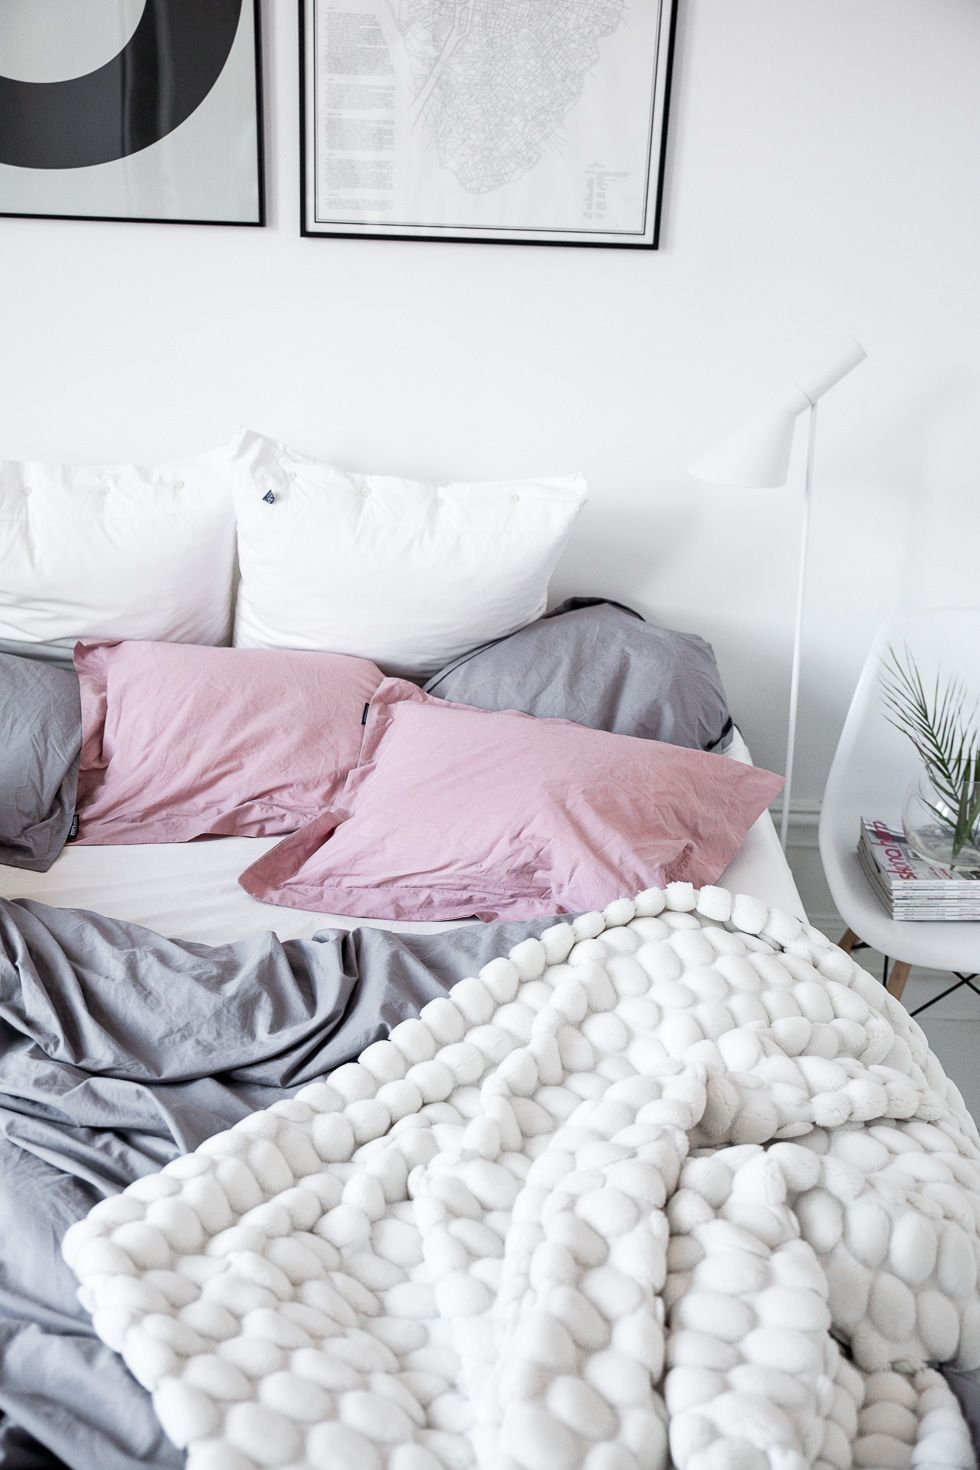 Schlafzimmer Einrichten Pinterest This Pin Was Discovered By Nassia Christie Discover And Save